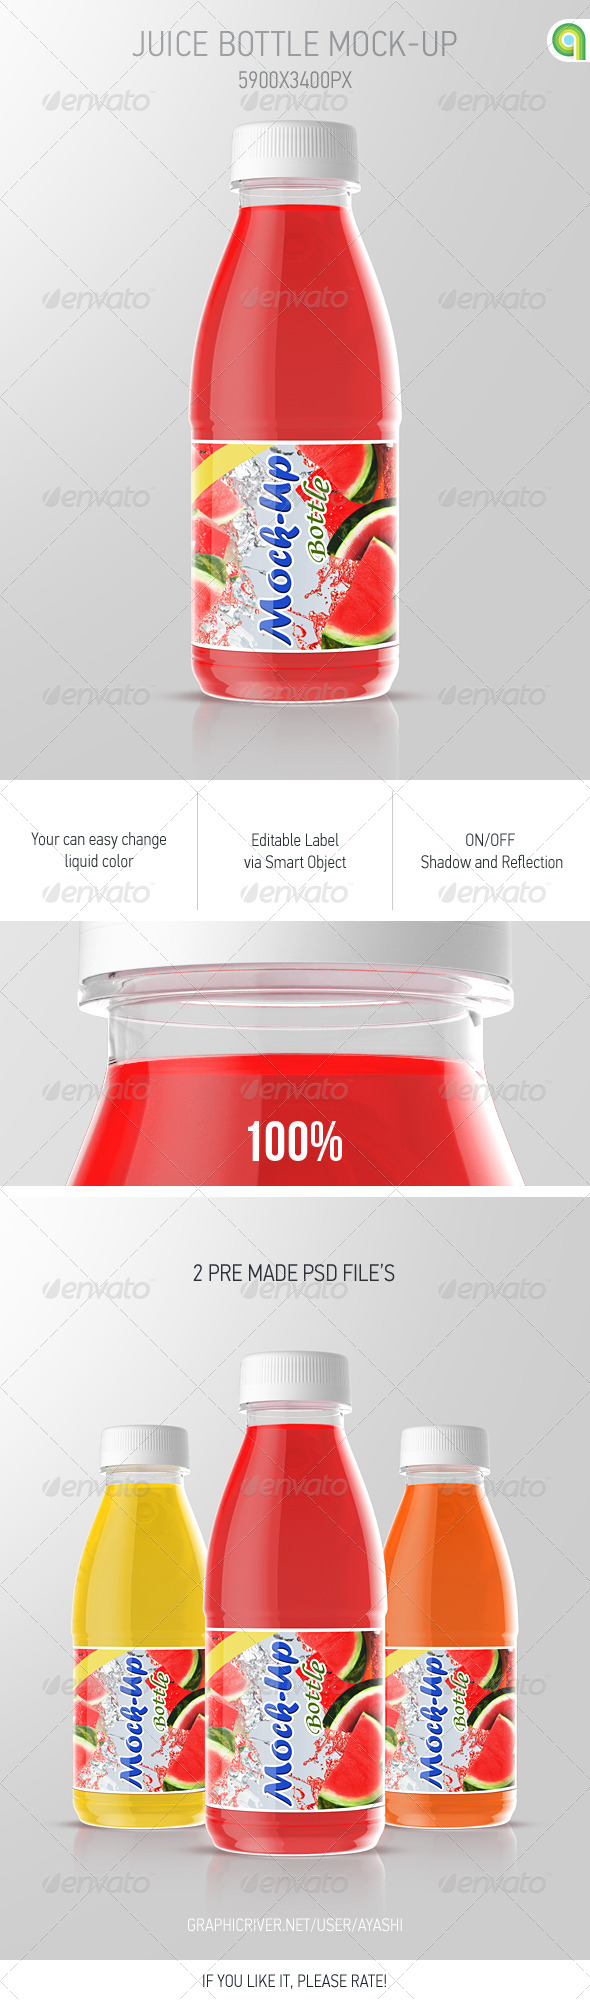 GraphicRiver Juice Bottle Mockup 8736678